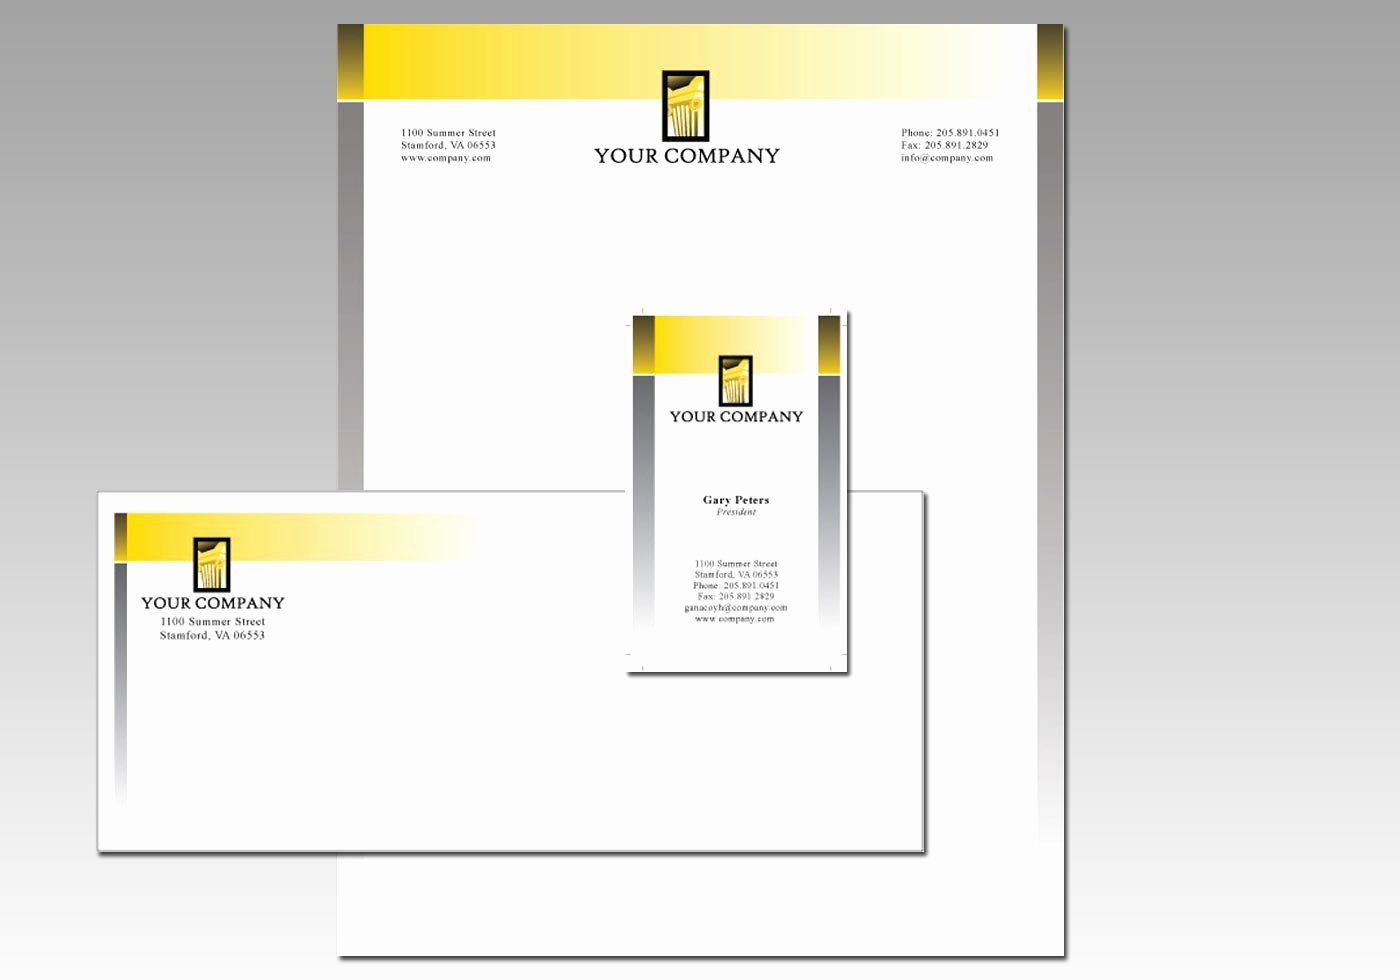 Free Printable Stationery Template Elegant Free Stationery Design Template Download Free Vector Art